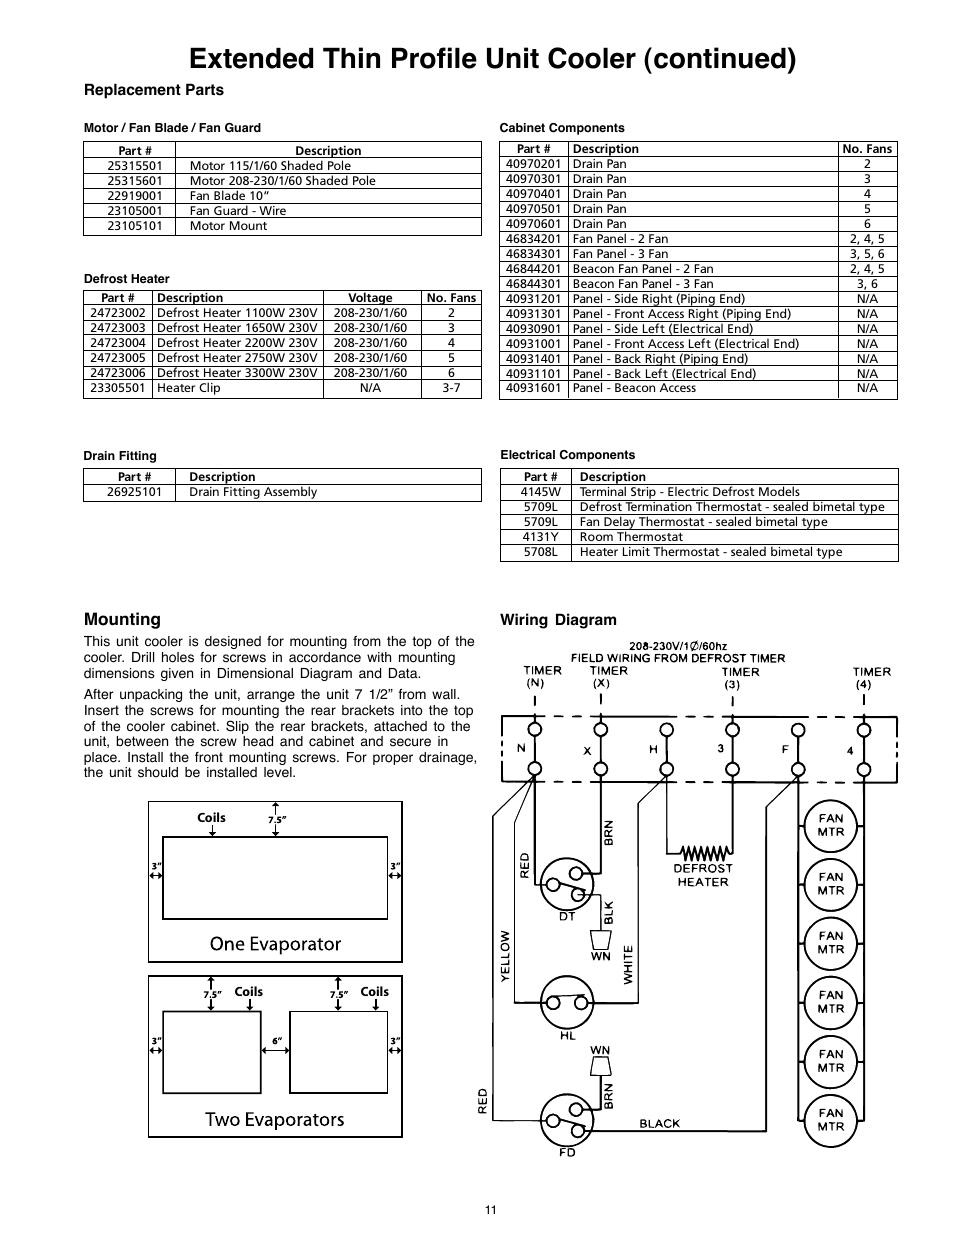 heatcraft refrigeration products 25005601 page11?resize\\\\\\\\\\\\\\\\\\\\\\\\\\\\\\\=665%2C861 heatcraft walk in cooler wiring diagram heatcraft wiring heatcraft evaporator wiring diagram at readyjetset.co